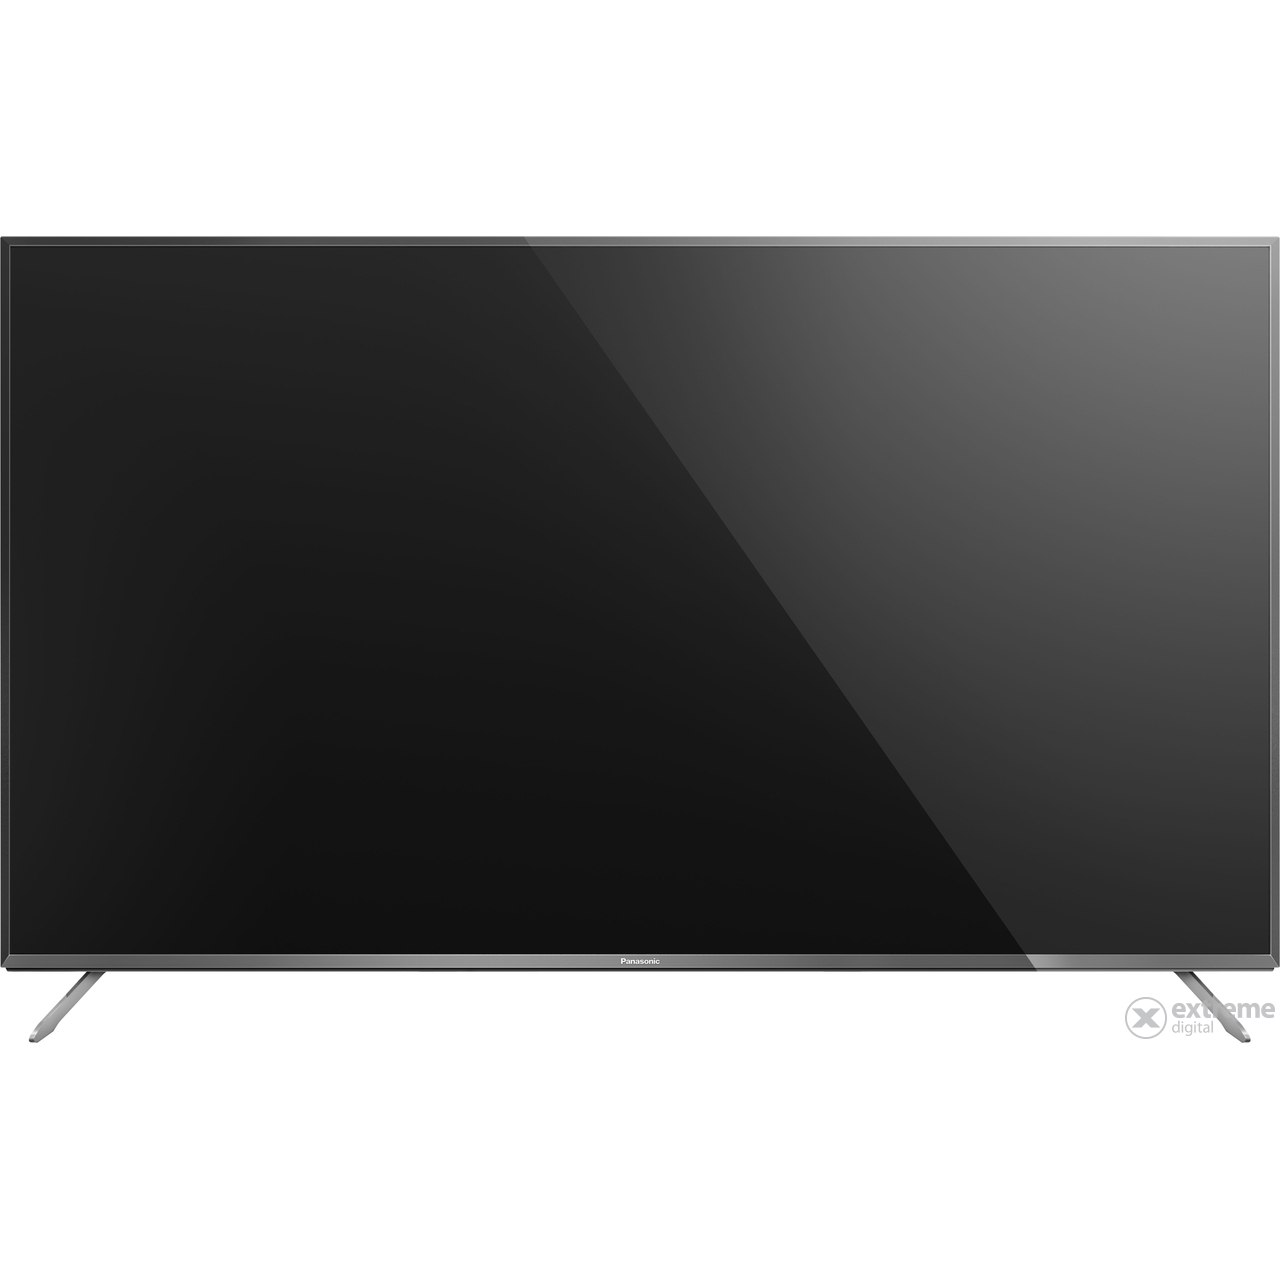 panasonic-tx-49cx740e-uhd-3d-smart-led-televizio_7ac1912a.jpg